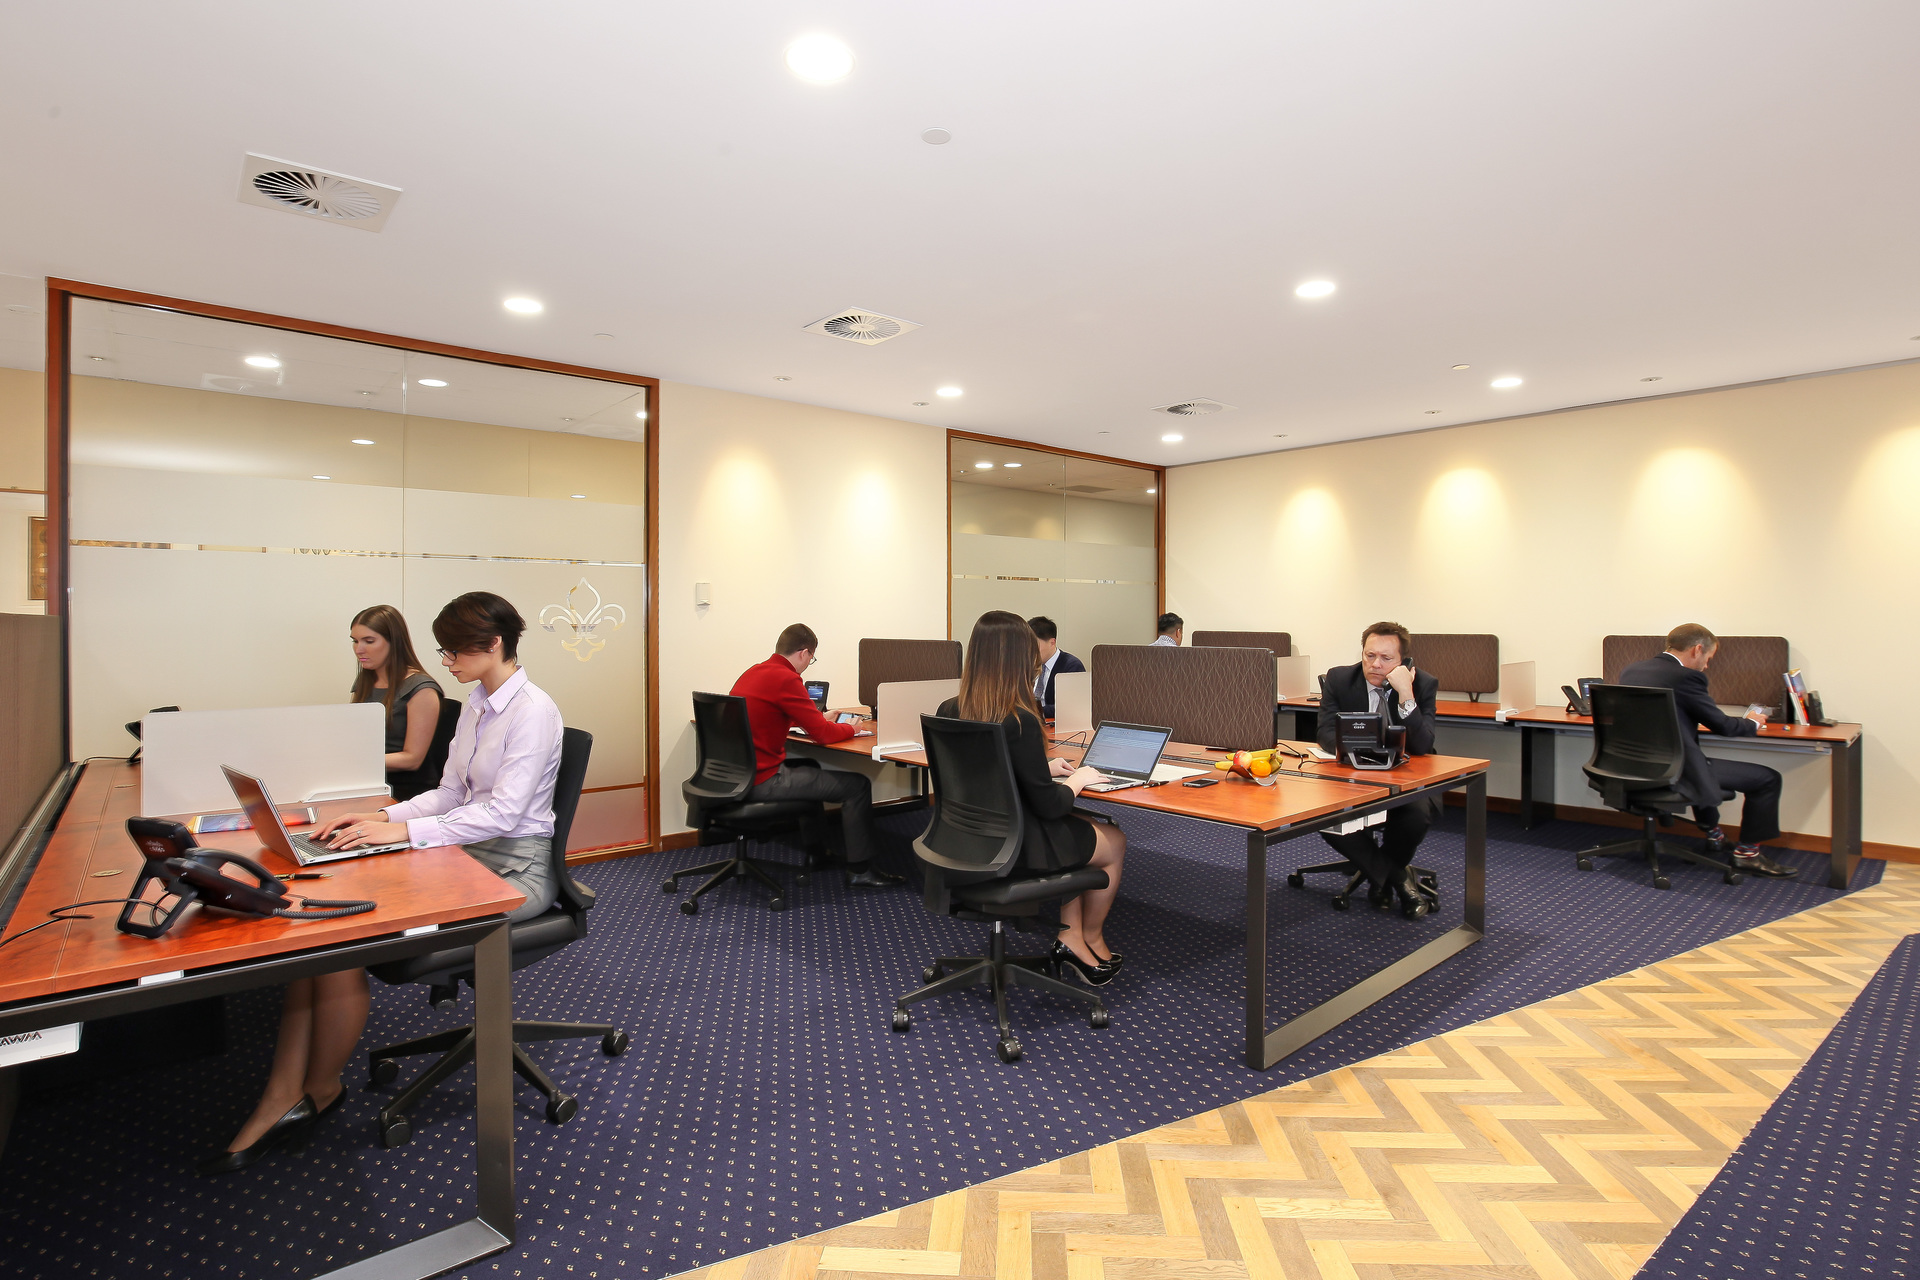 OFFICES LOCATED IN SYDNEY FOR 1-PERSON